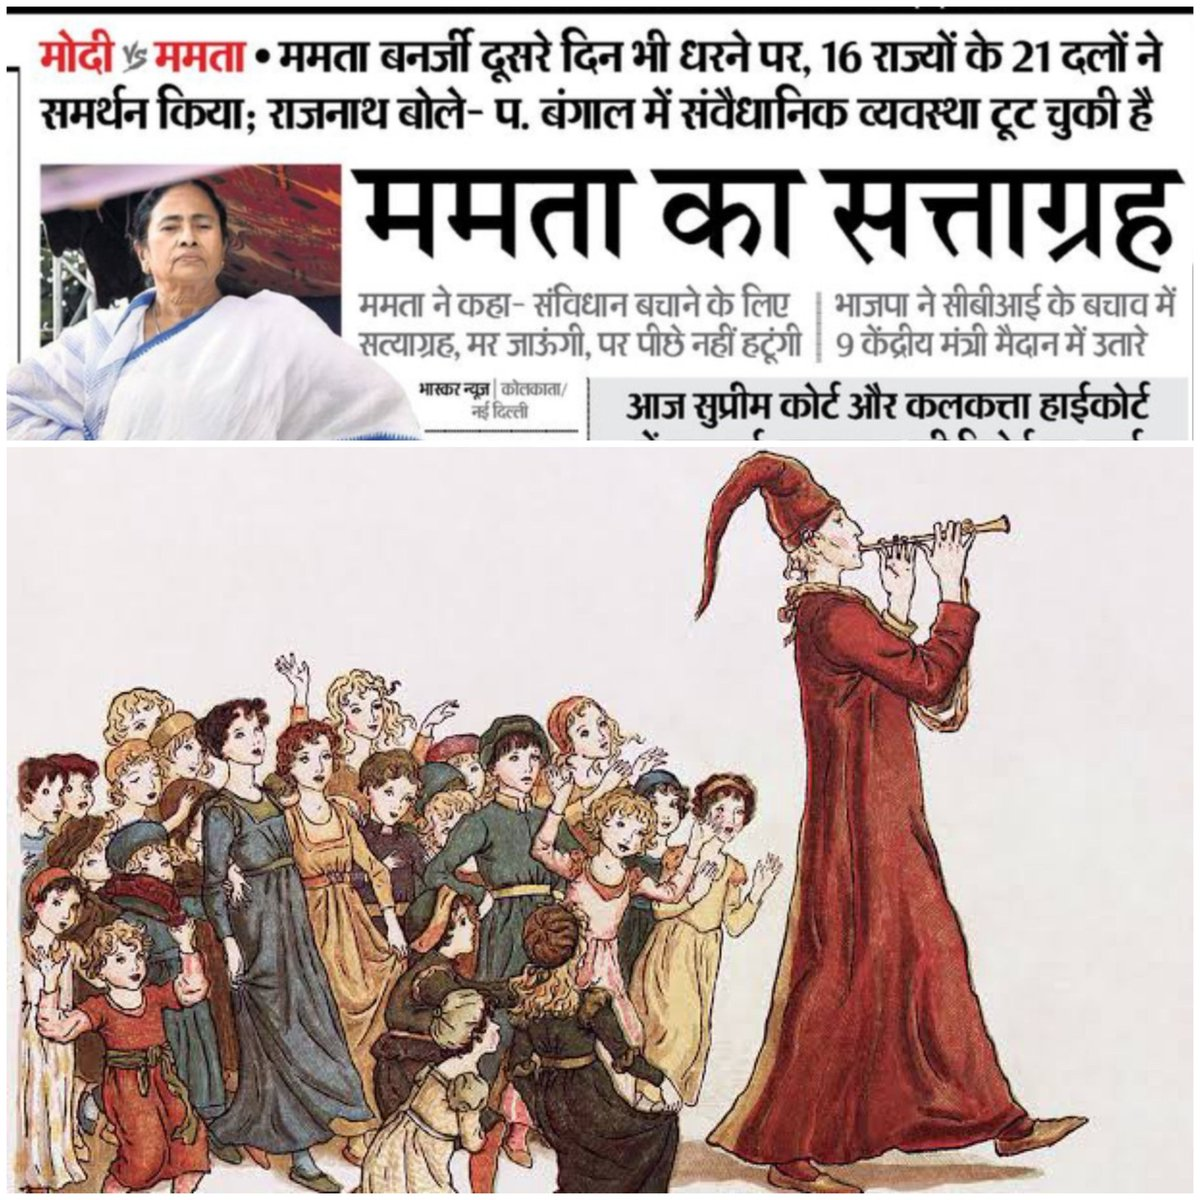 21 Political Parties in support of Mamta....WOW.....reminds me of the  &#39;Pied Piper of Hamelin&#39; #CBIvsMamata #ModiOnceMore<br>http://pic.twitter.com/q3MiftYKcb